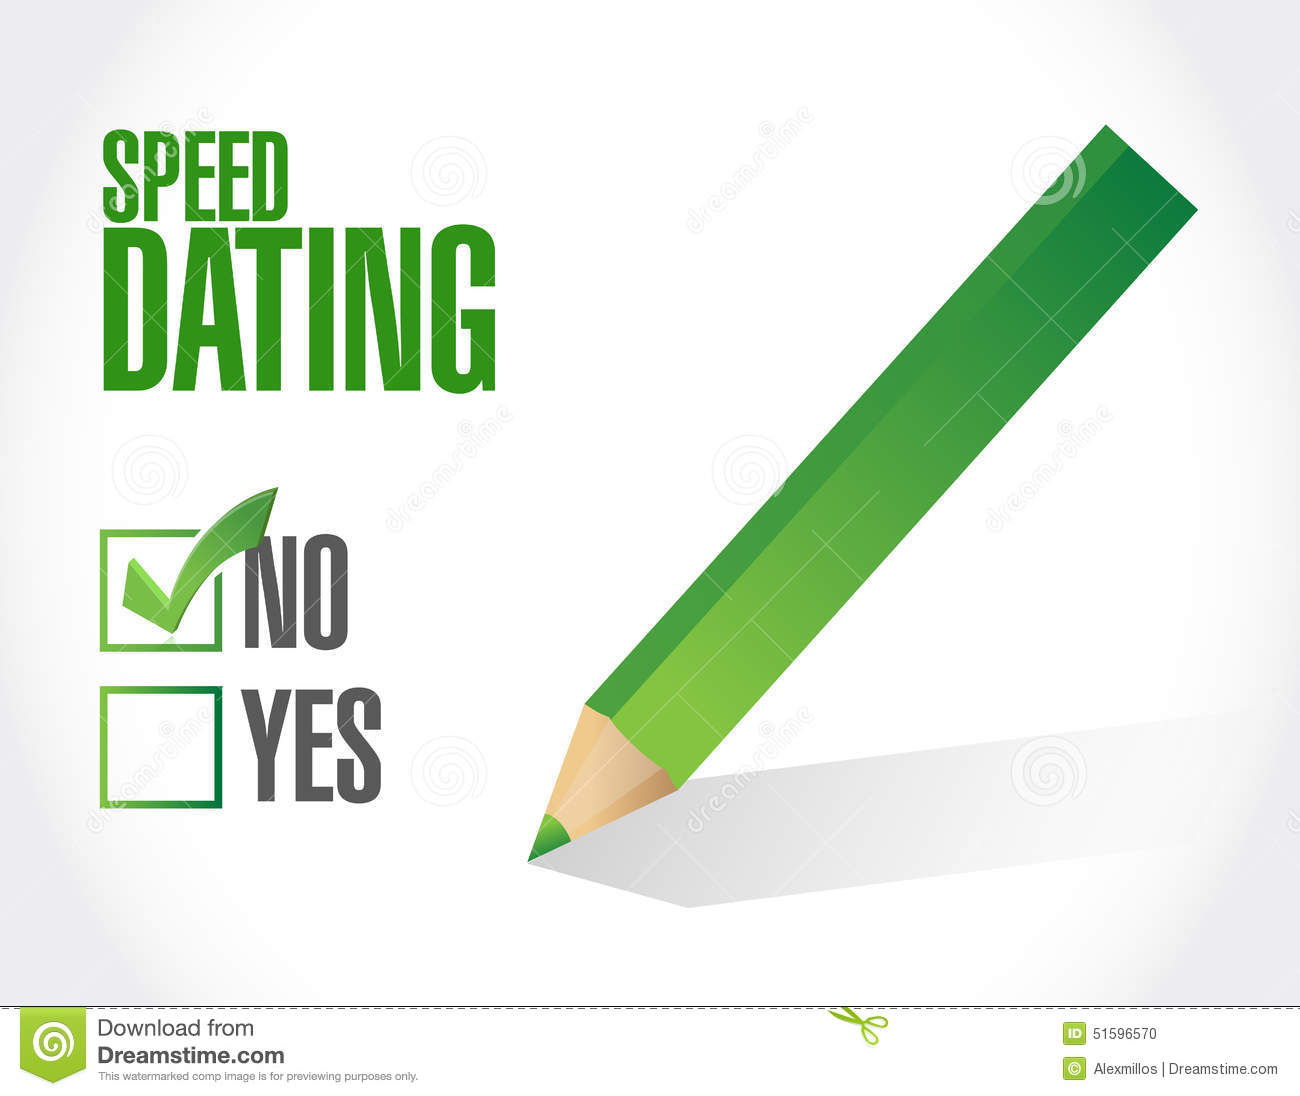 what is the concept of speed dating